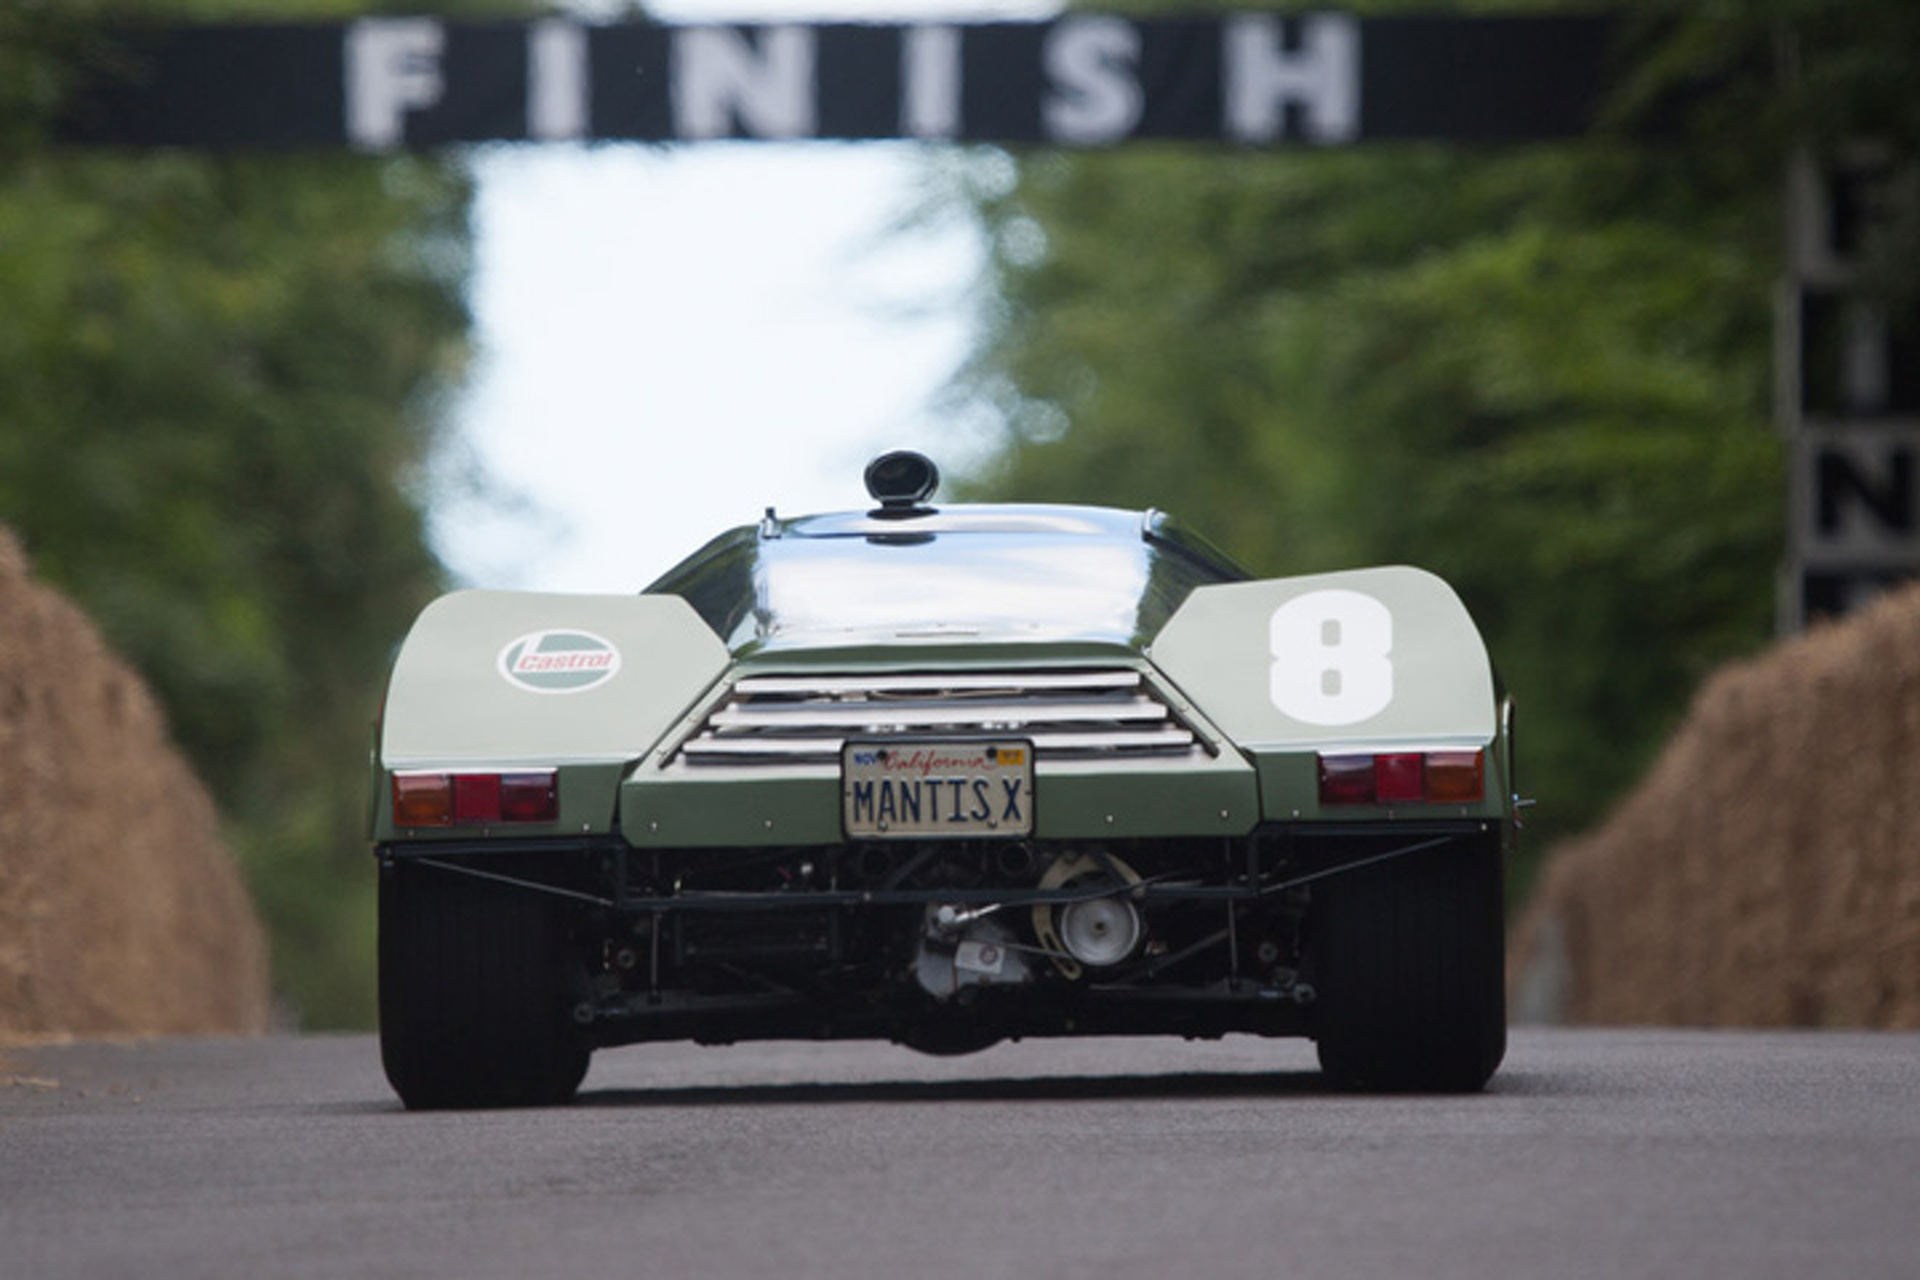 1968 Marcos Mantis XP: A Car That Just Wasn't Meant To Race